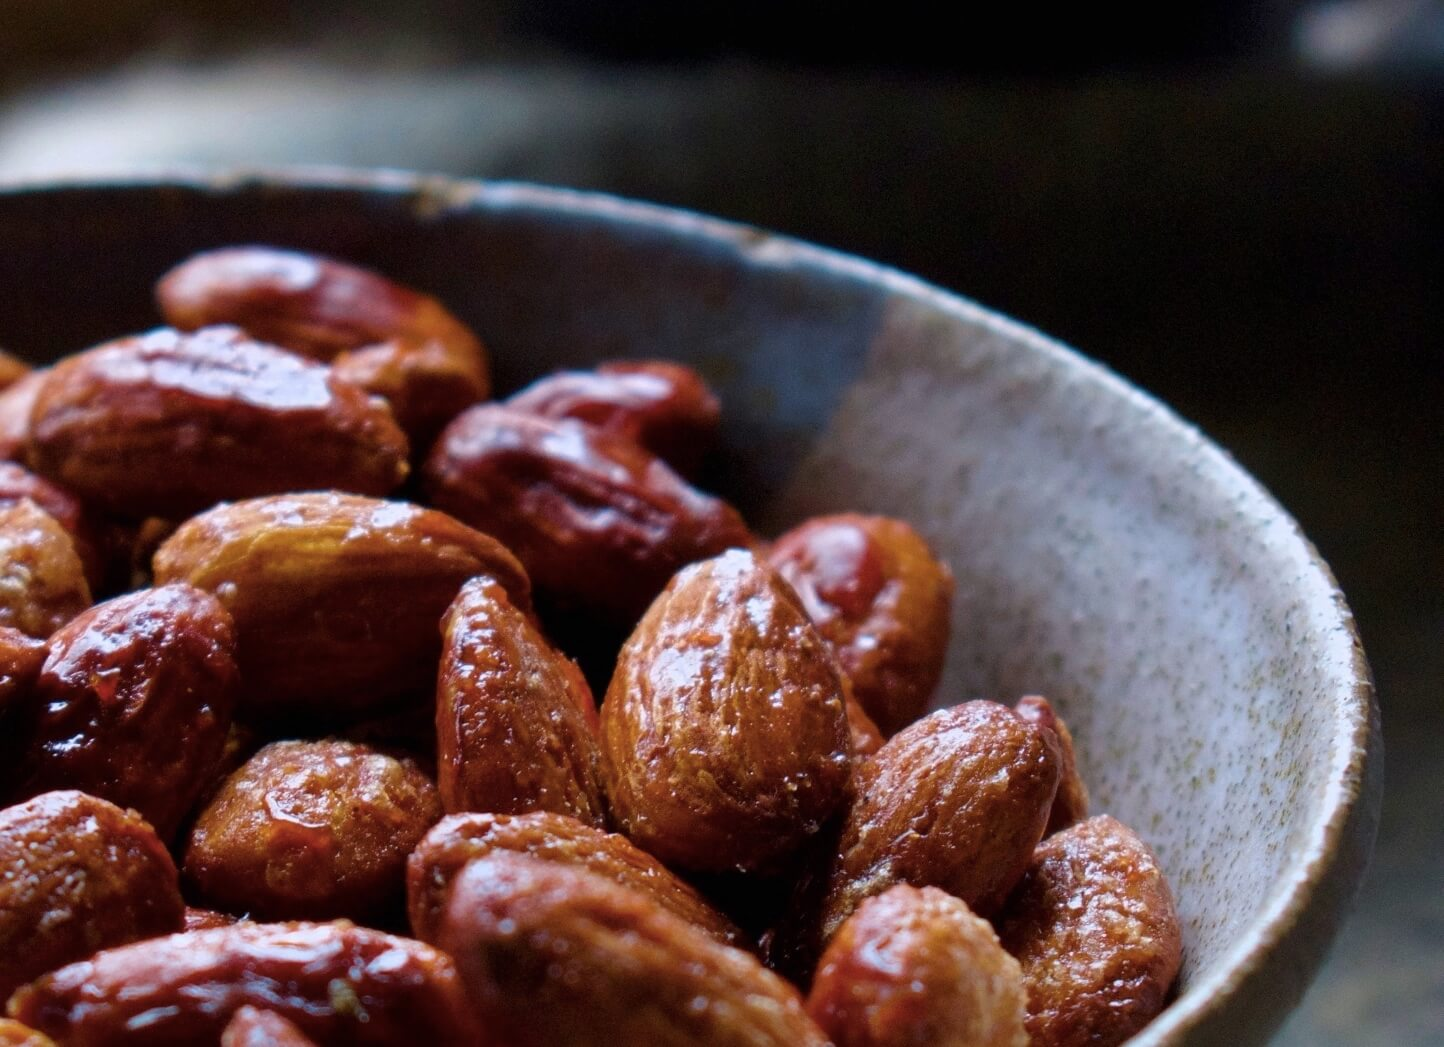 MAPLE WHISKY ROASTED ALMONDS